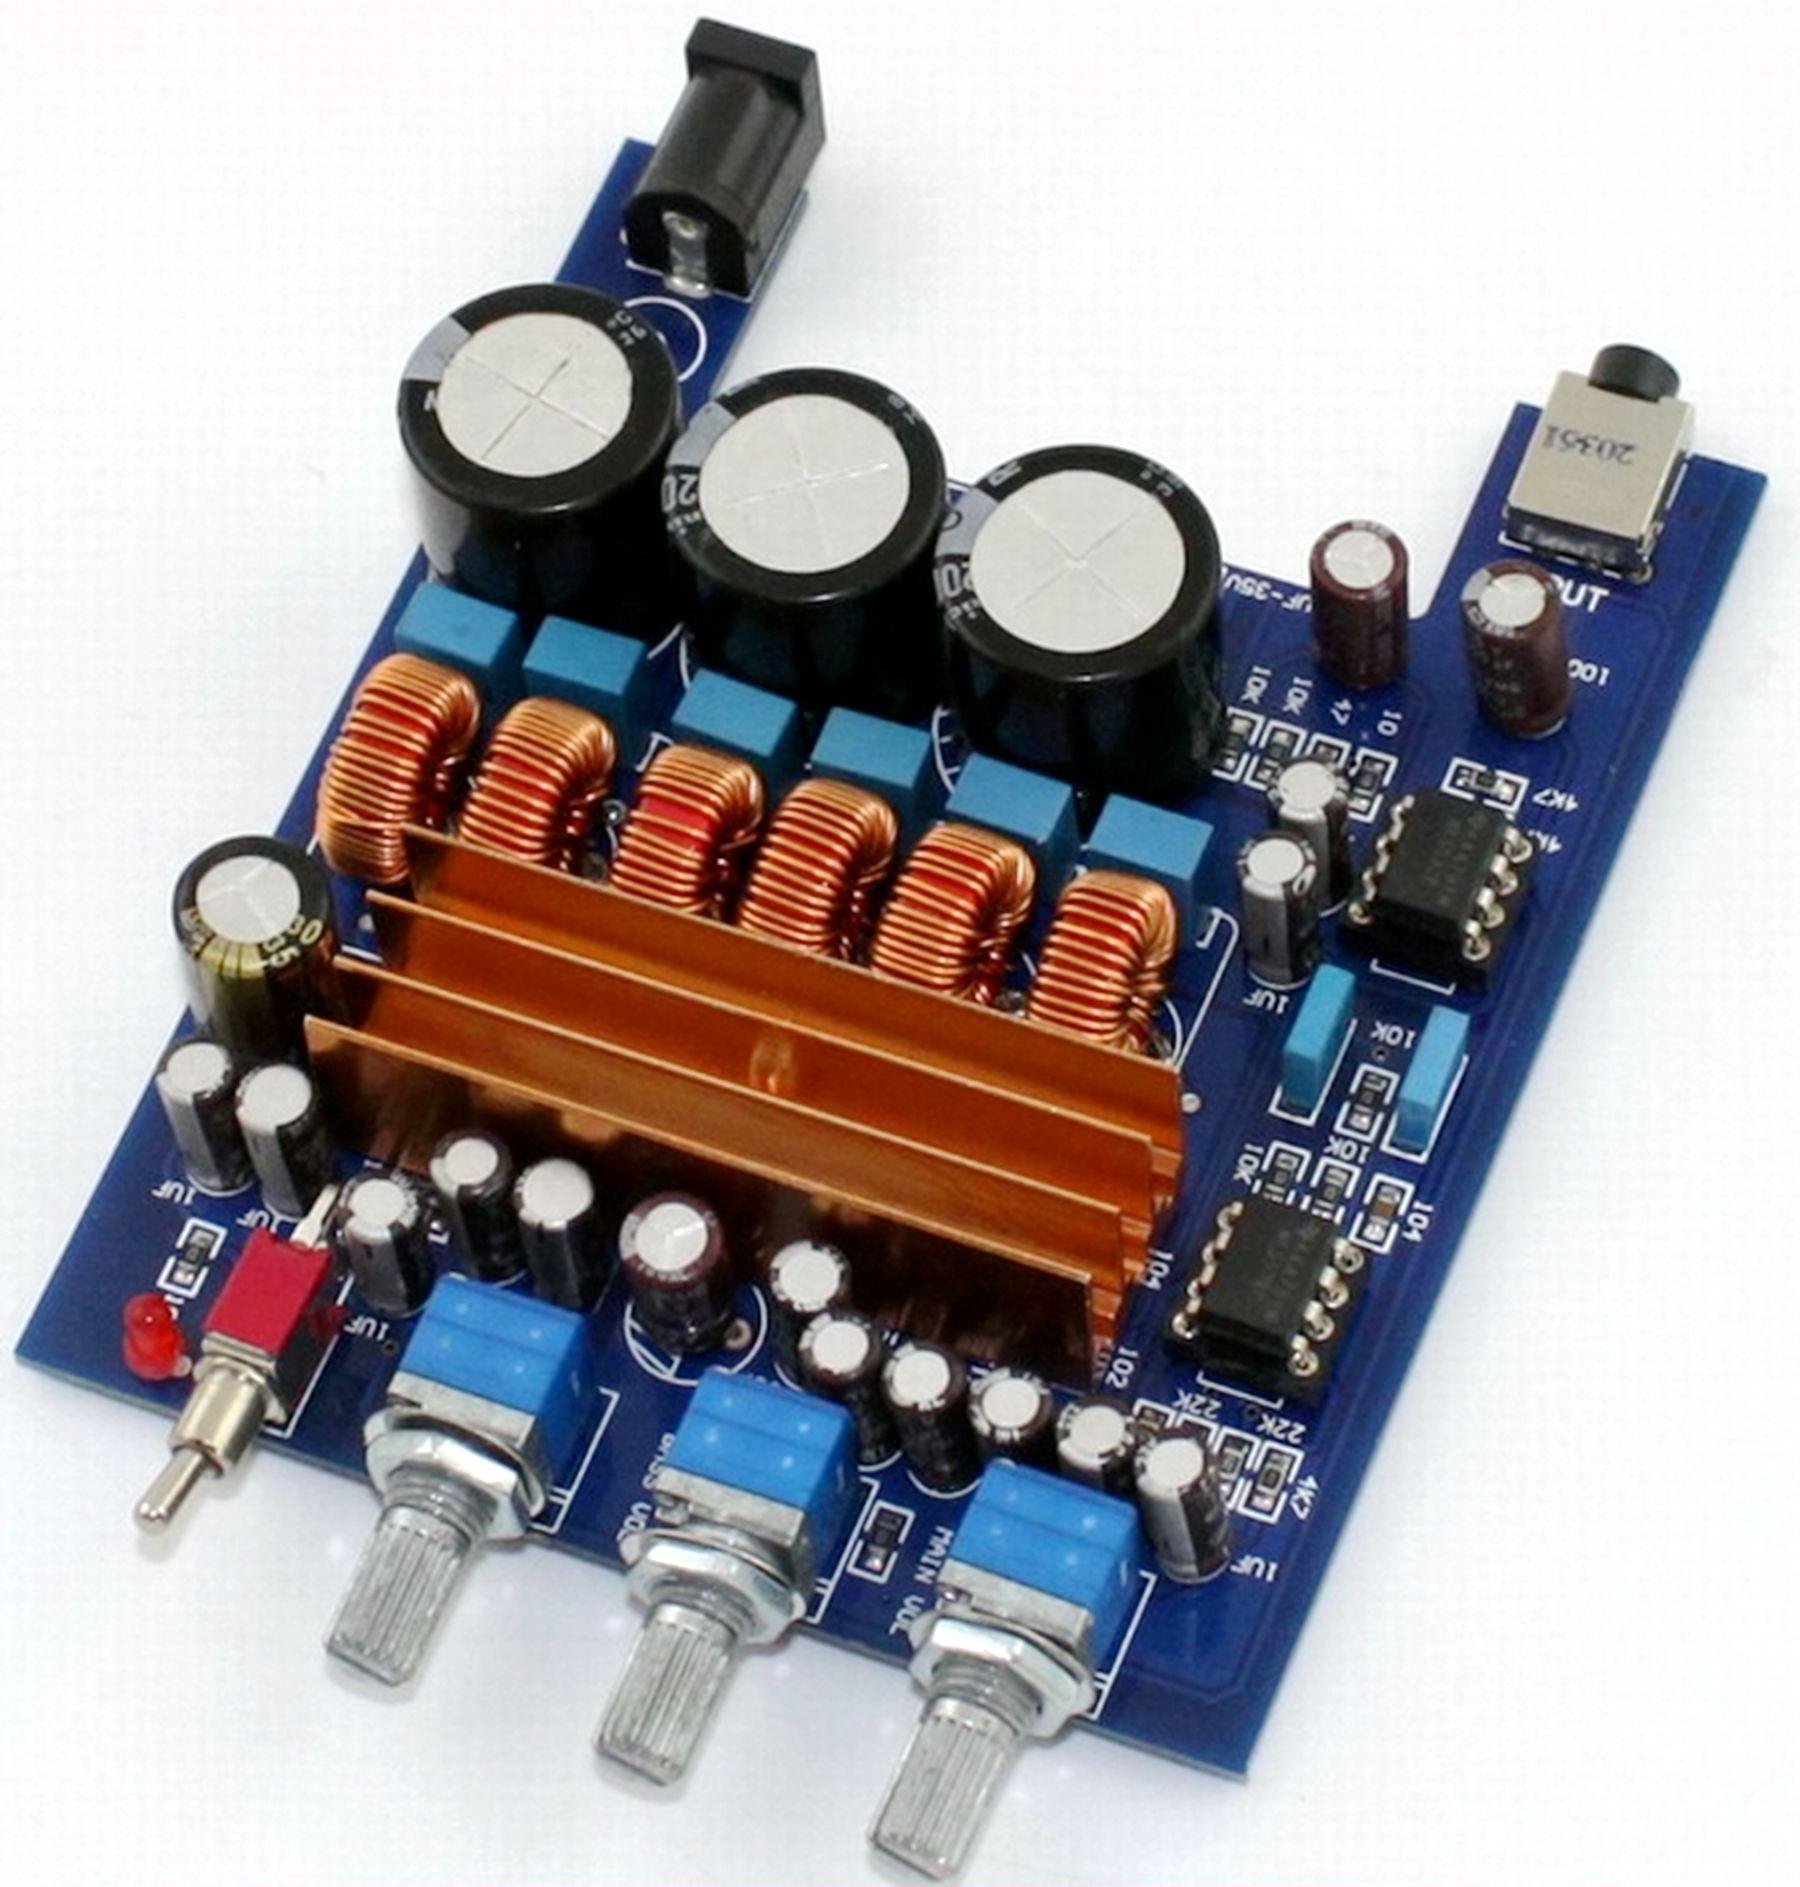 Best 21 High Power Digital Amplifier Board Tpa3116 Filter Capacitor Capacity Increase 3 Times Under 2764